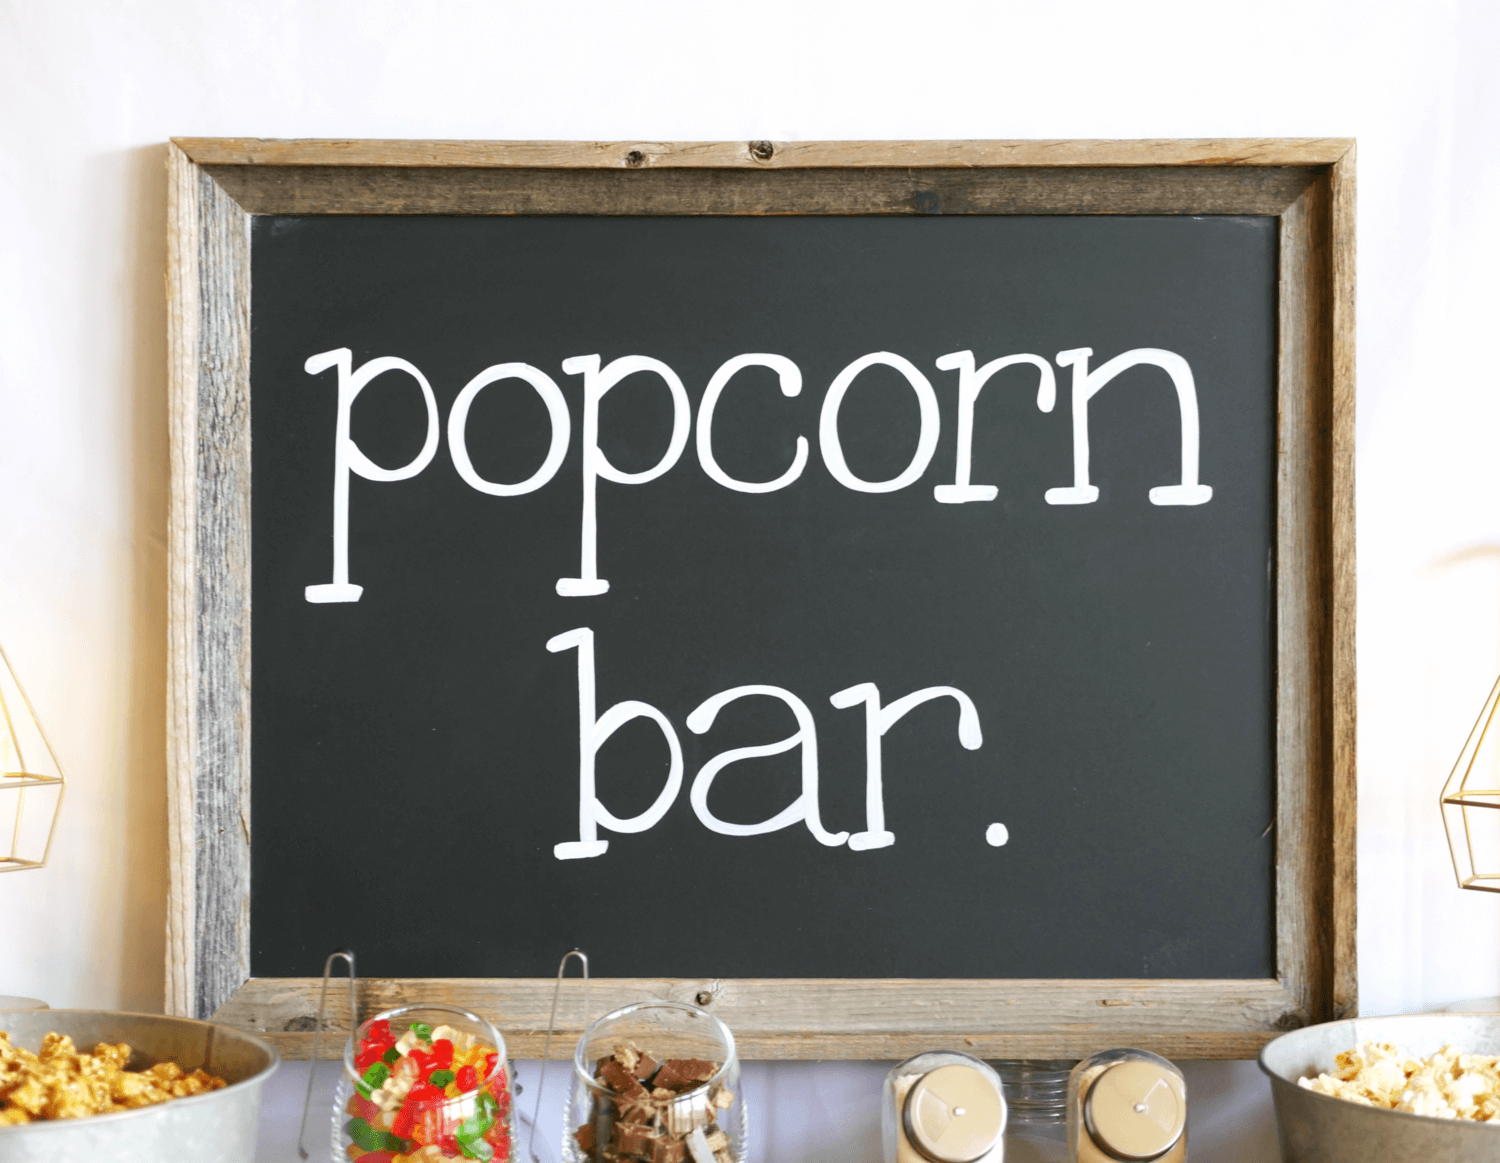 Popcorn bar idea / Popcorn Chalkboard sign / Teen Popcorn bar idea / Rustic Chalkboard sign / Rustic Popcorn bar / Styled by Carolina from MINT Event design / www.minteventdesign.com